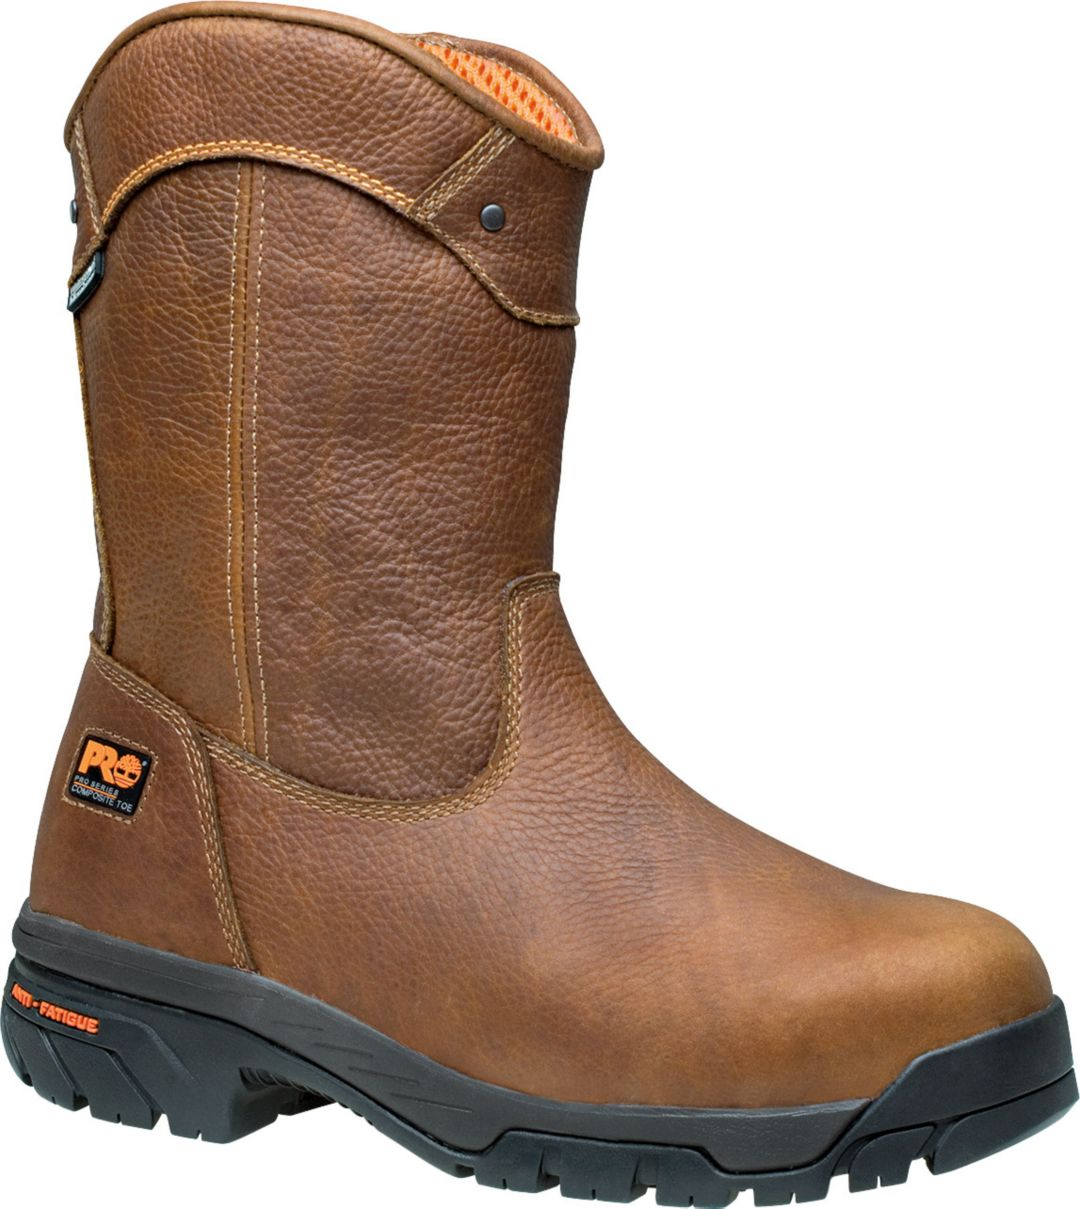 7554cf44a93 Timberland PRO Men's Helix Wellington Waterproof Composite Toe Work Boots